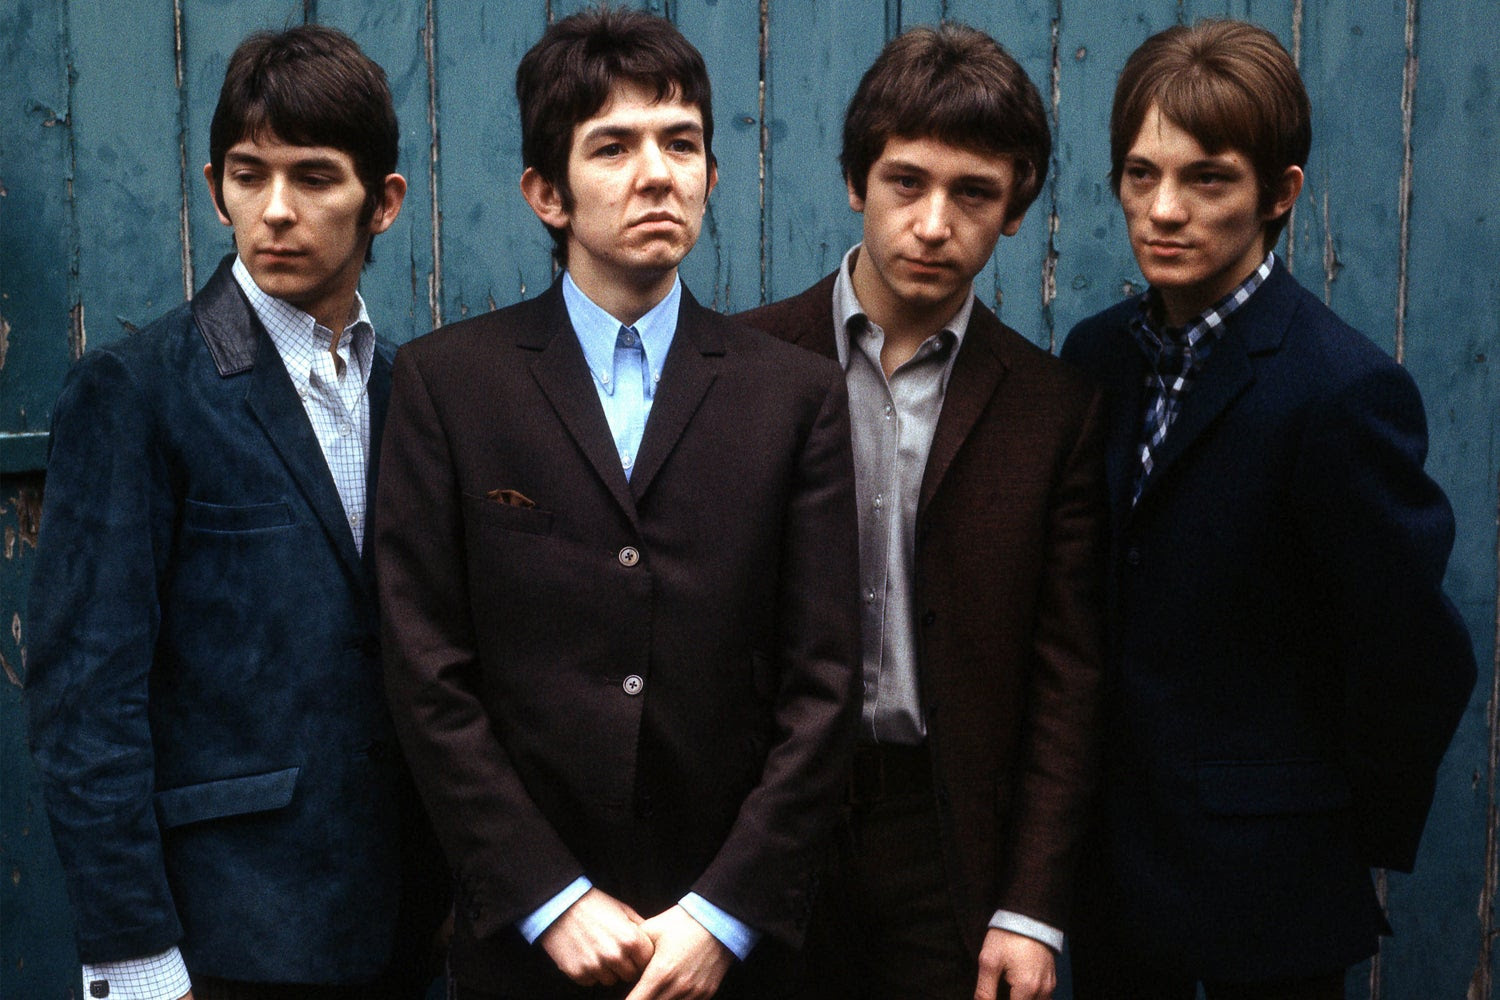 small faces 16